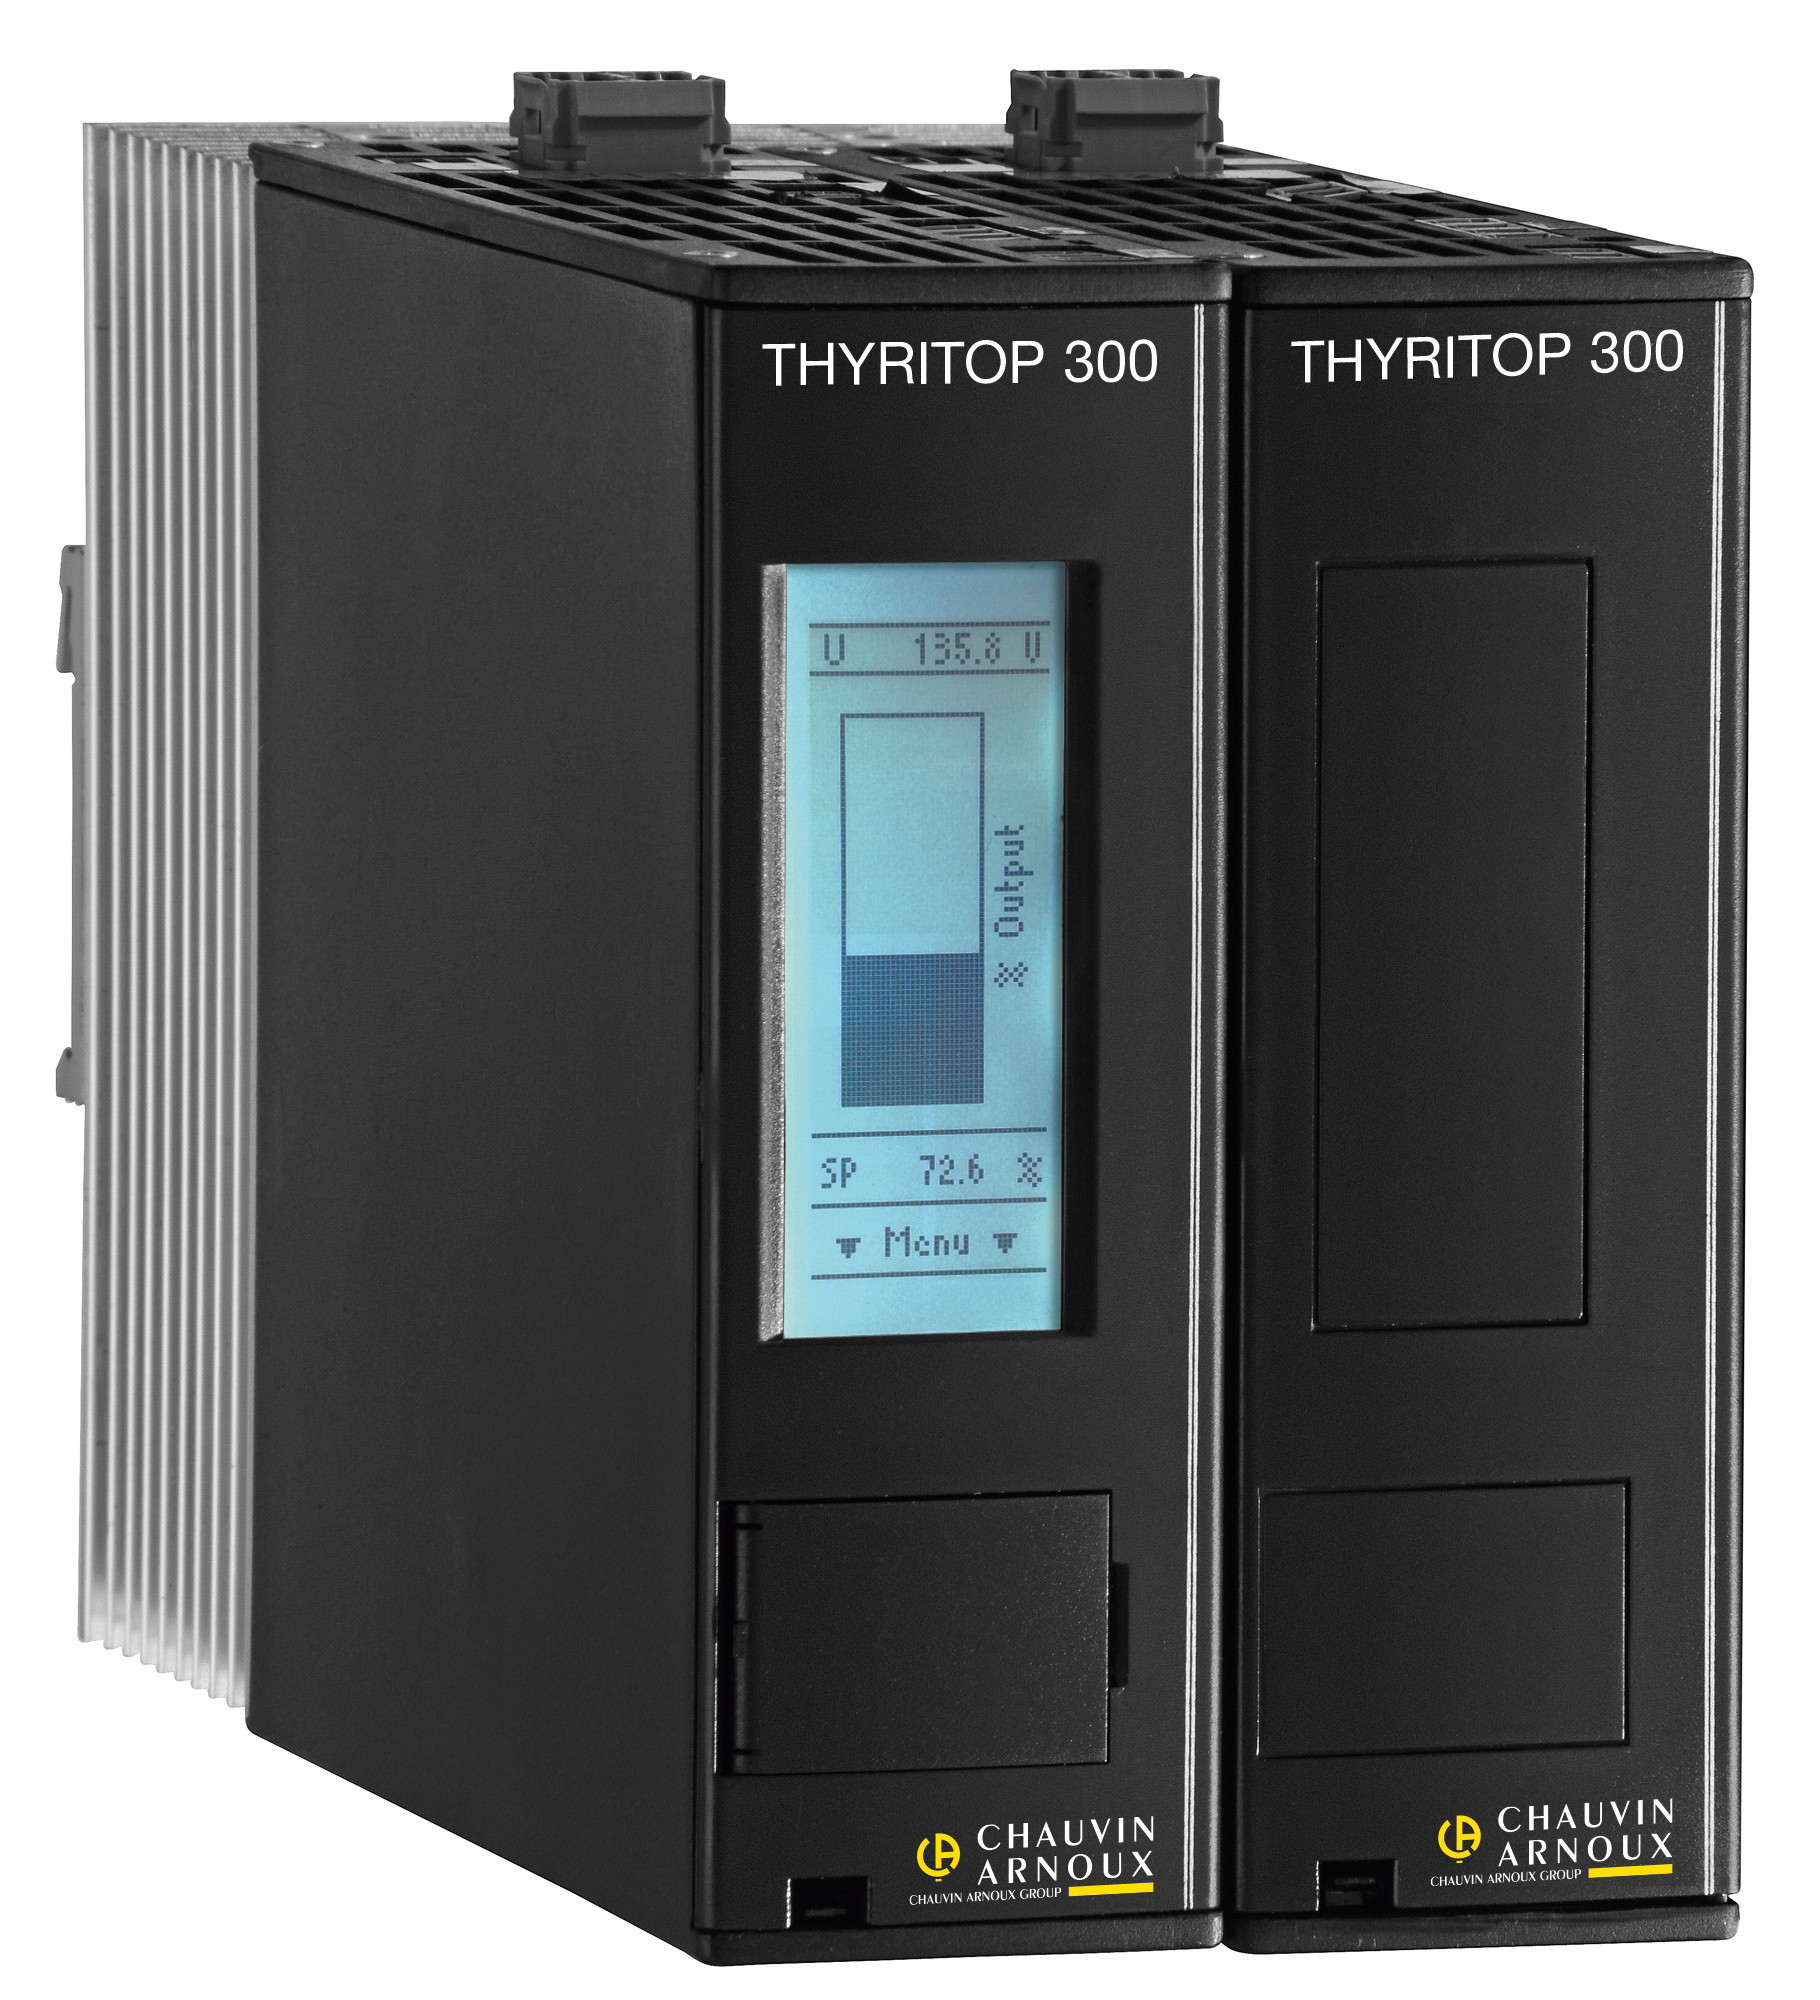 The Thyritop 300 models represent the latest gen-eration of power controllers for all types of resistive or inductive lo